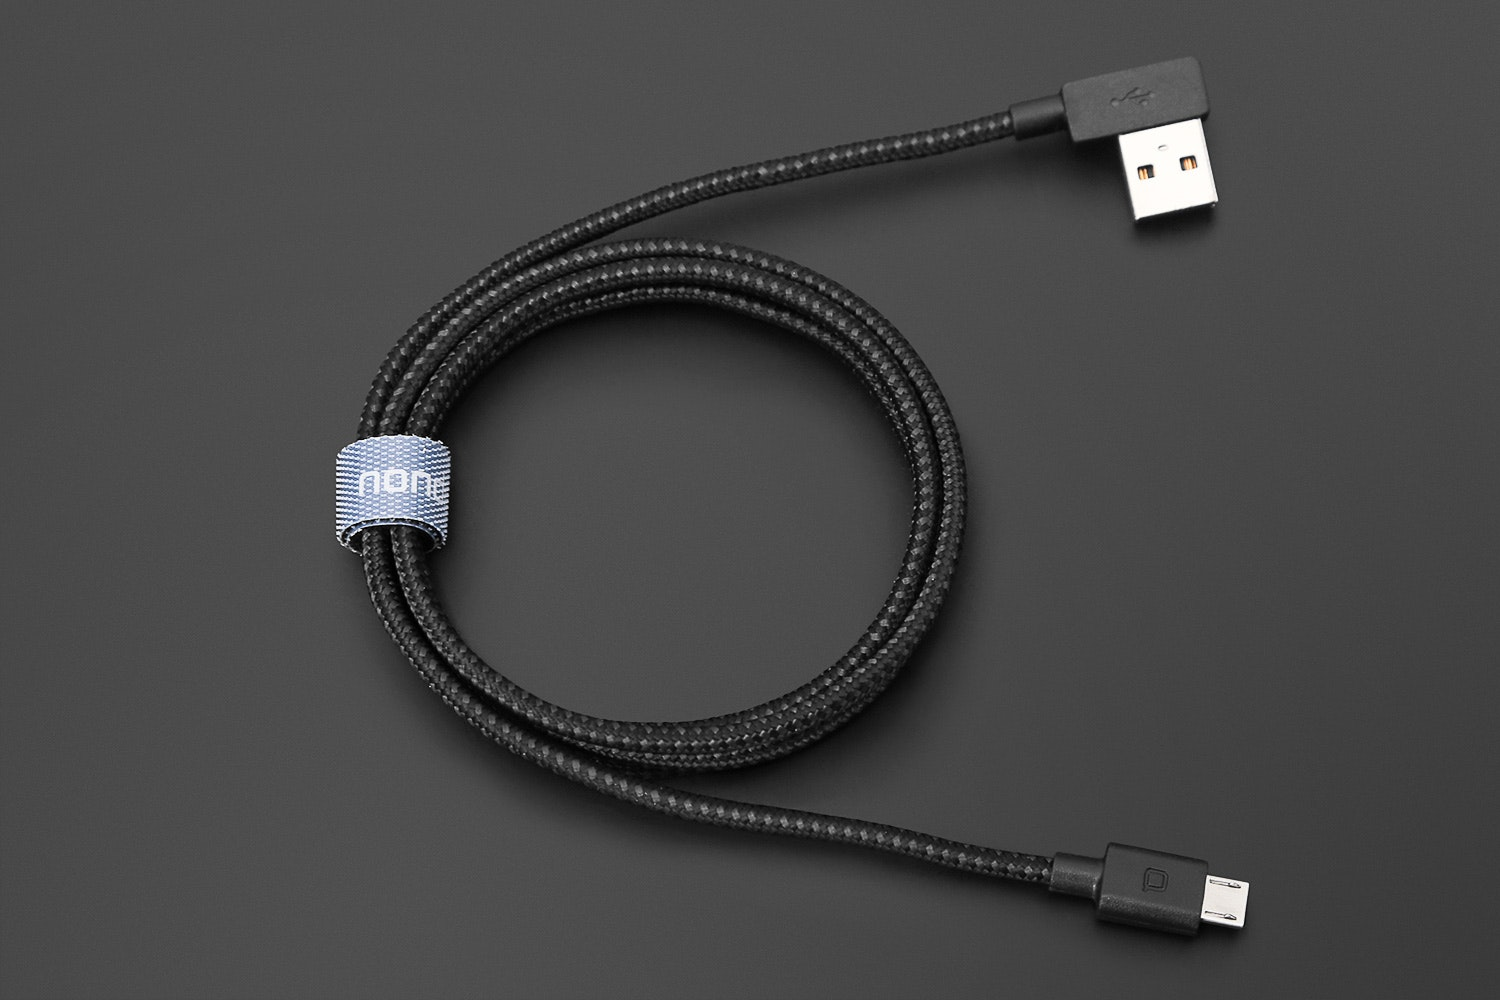 USB-A to Micro USB